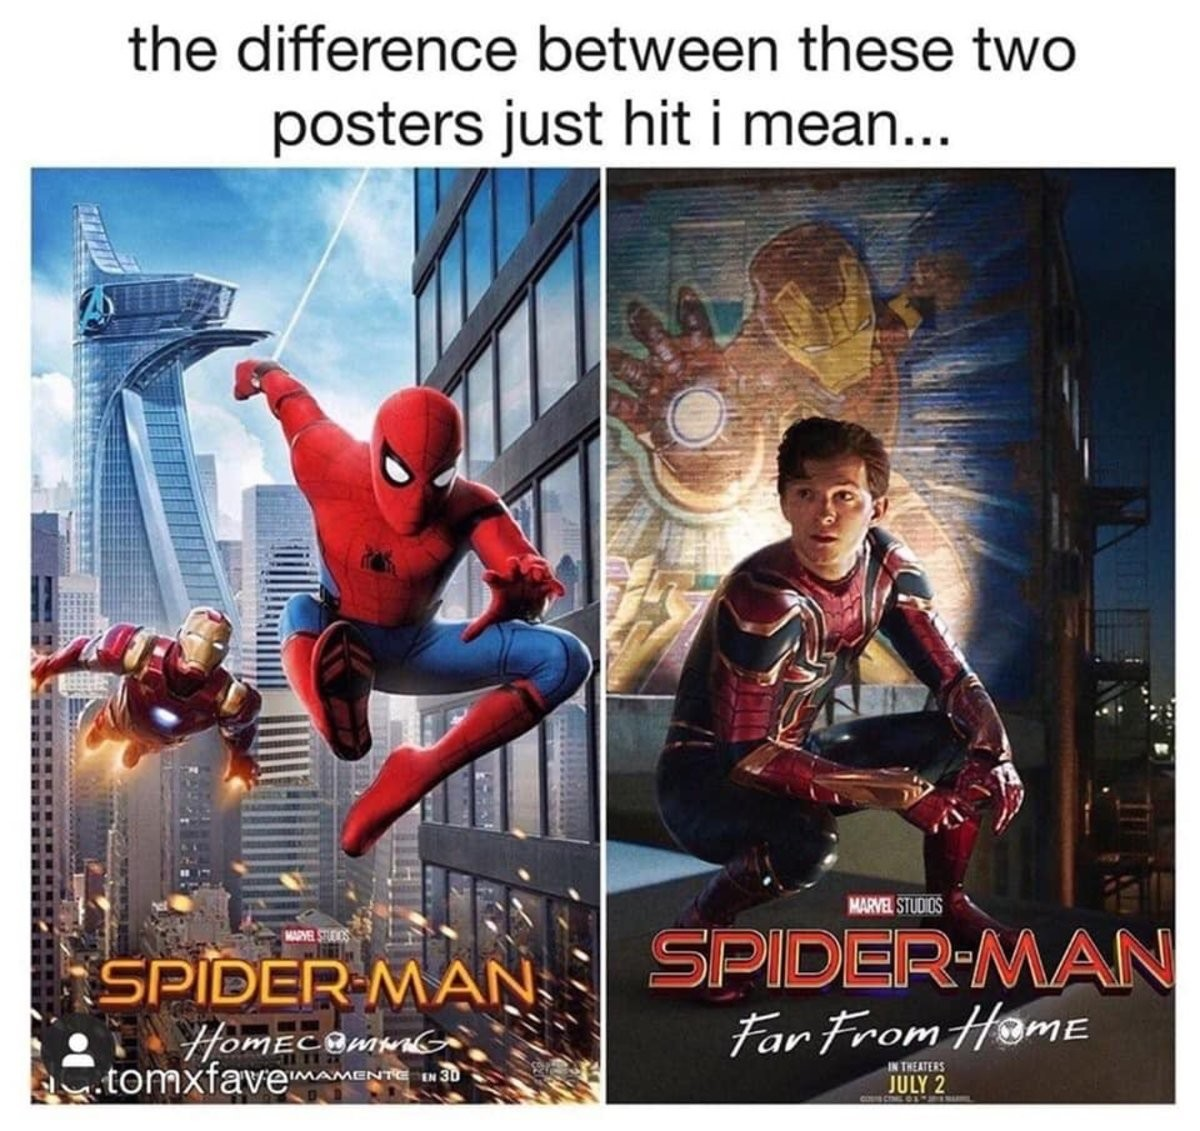 The difference. .. Is that suit directly how it looks from the comics? I know you can use it in the videogame, but I thought the modern movies changed them a little. The Iron Spid